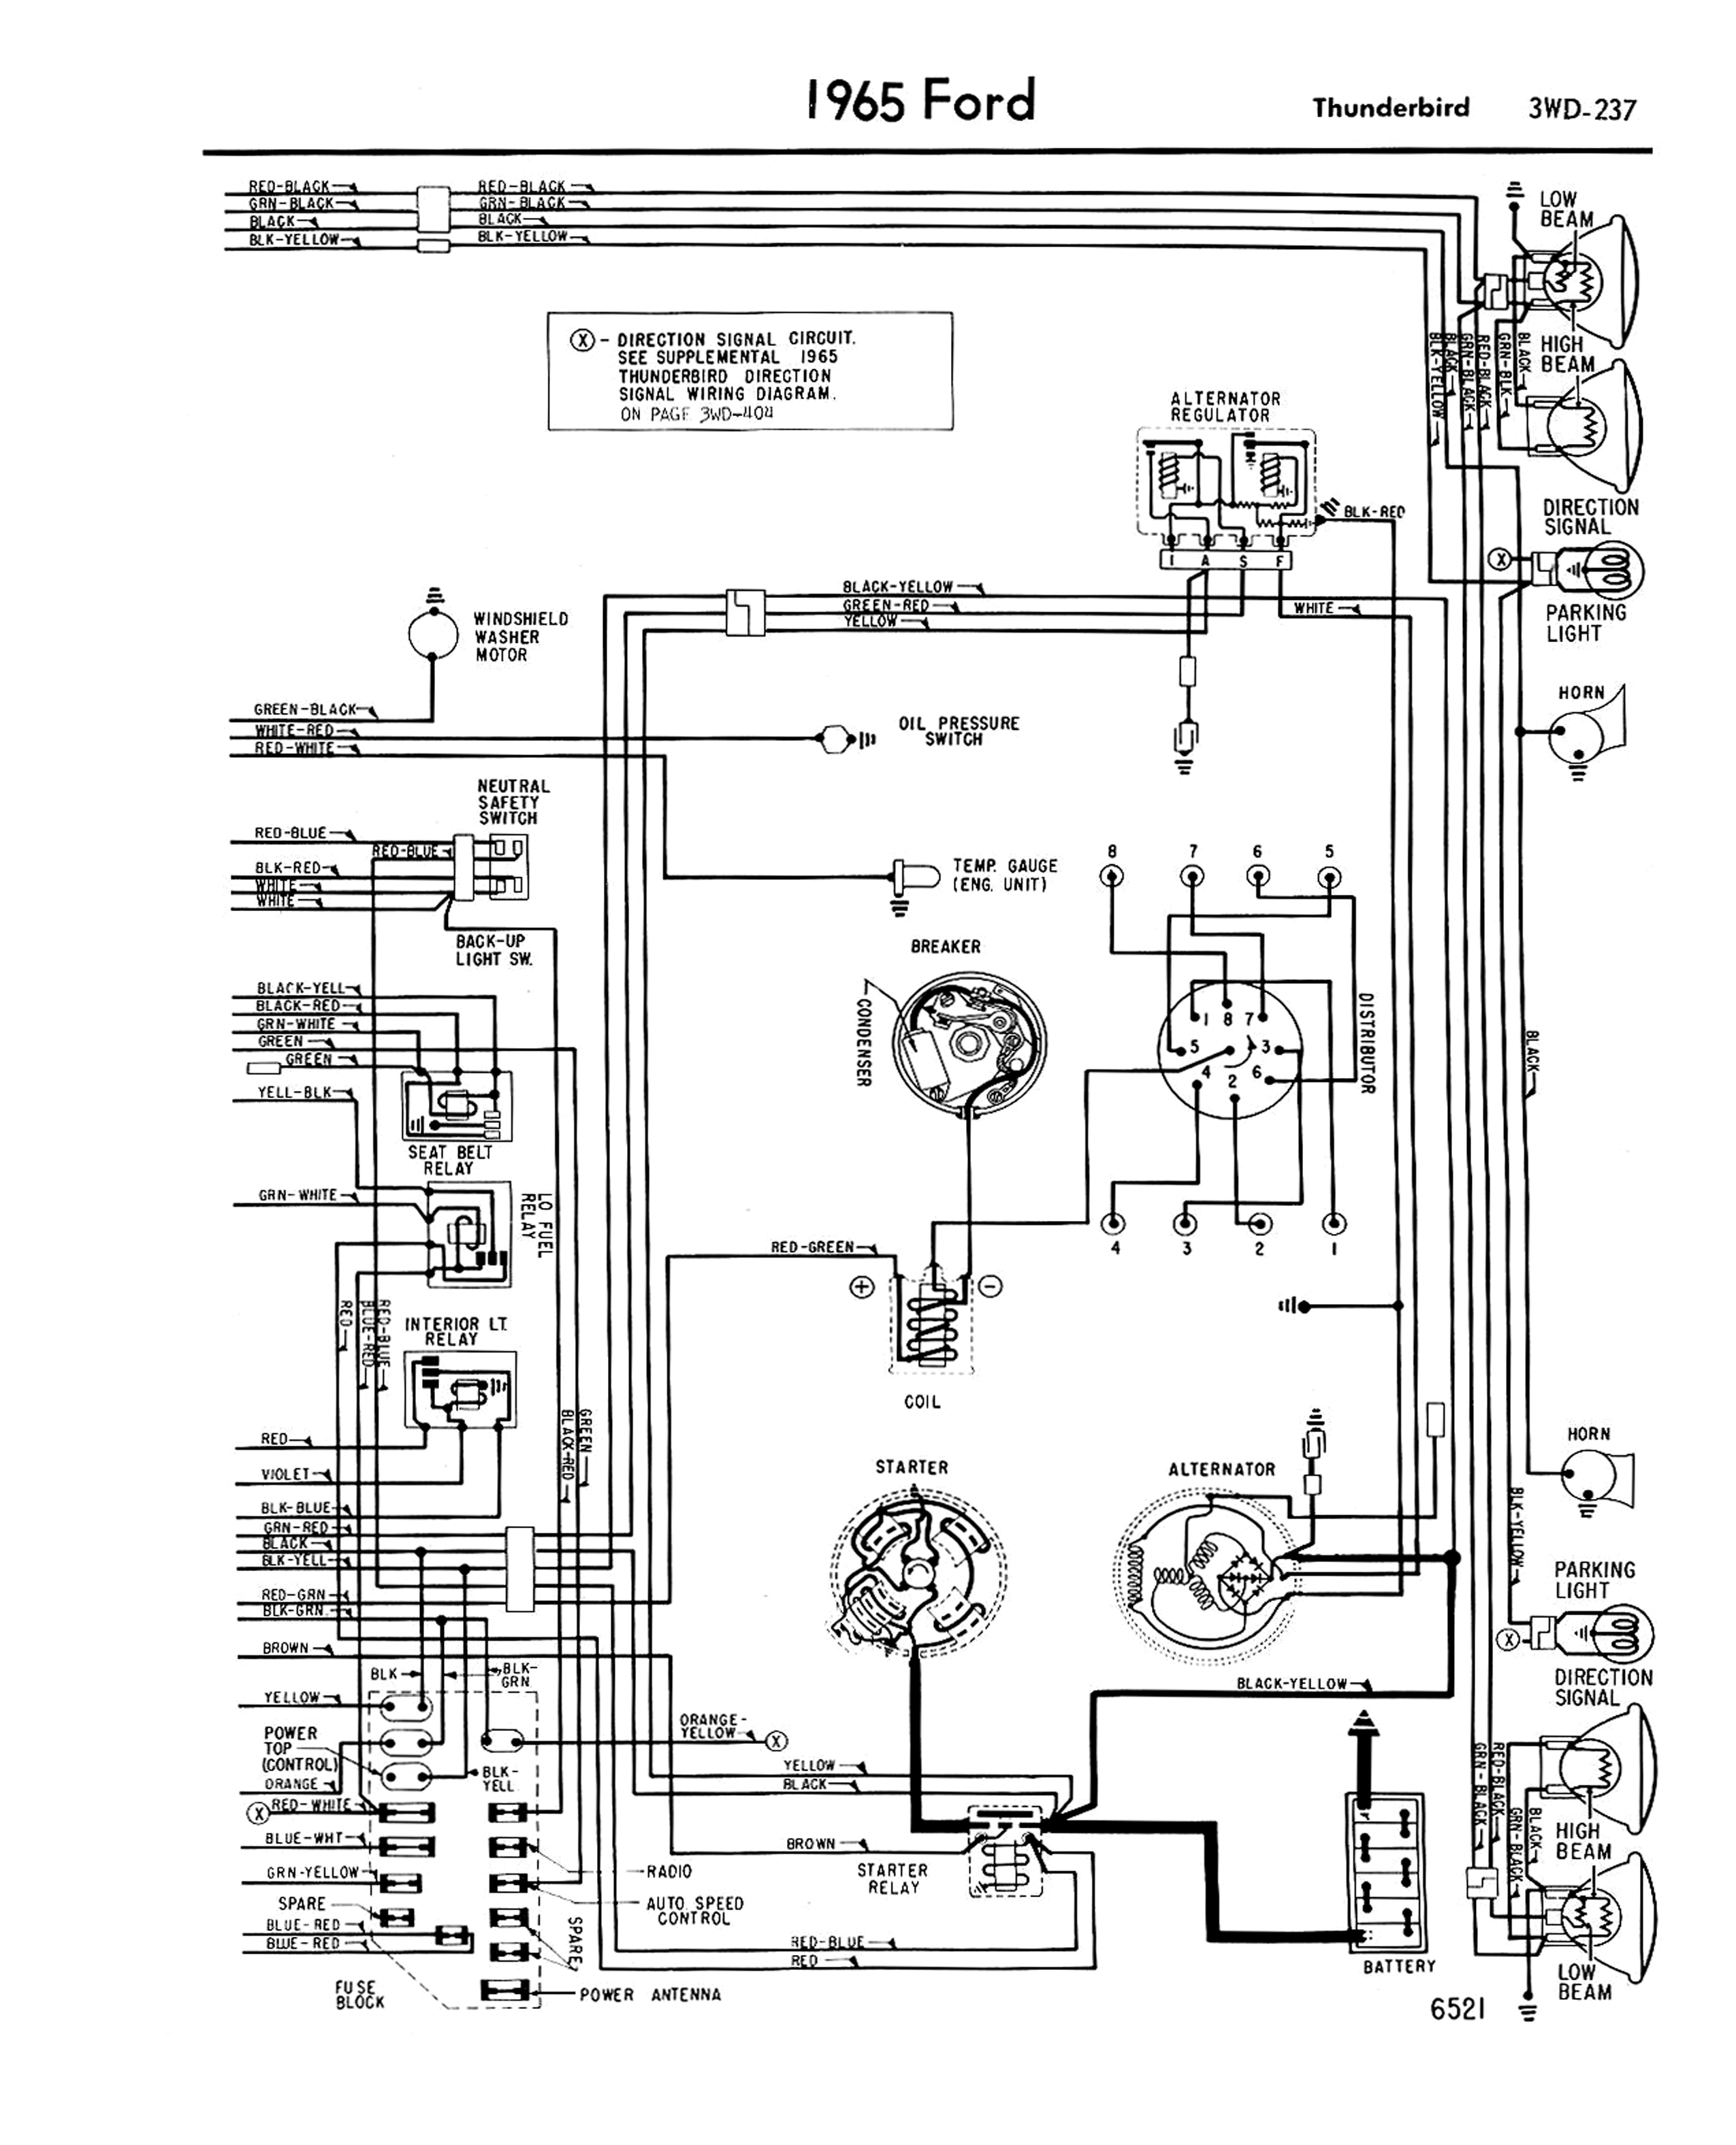 65TbirdWiringDiagramRight 1958 68 ford electrical schematics 1965 ford f100 wiring diagram at crackthecode.co